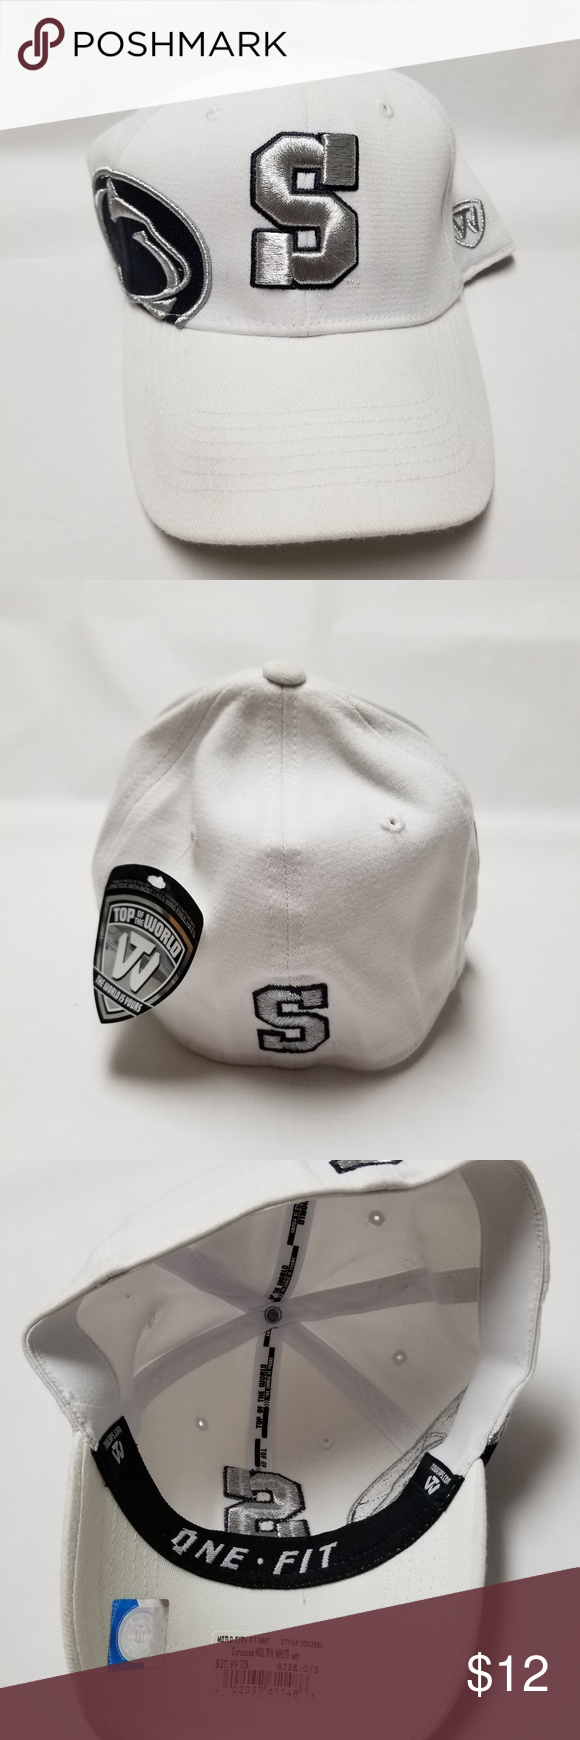 new products 73a76 9ab53 Penn State Nittany Lions fitted hat. Brand new. Top of the World  Accessories Hats